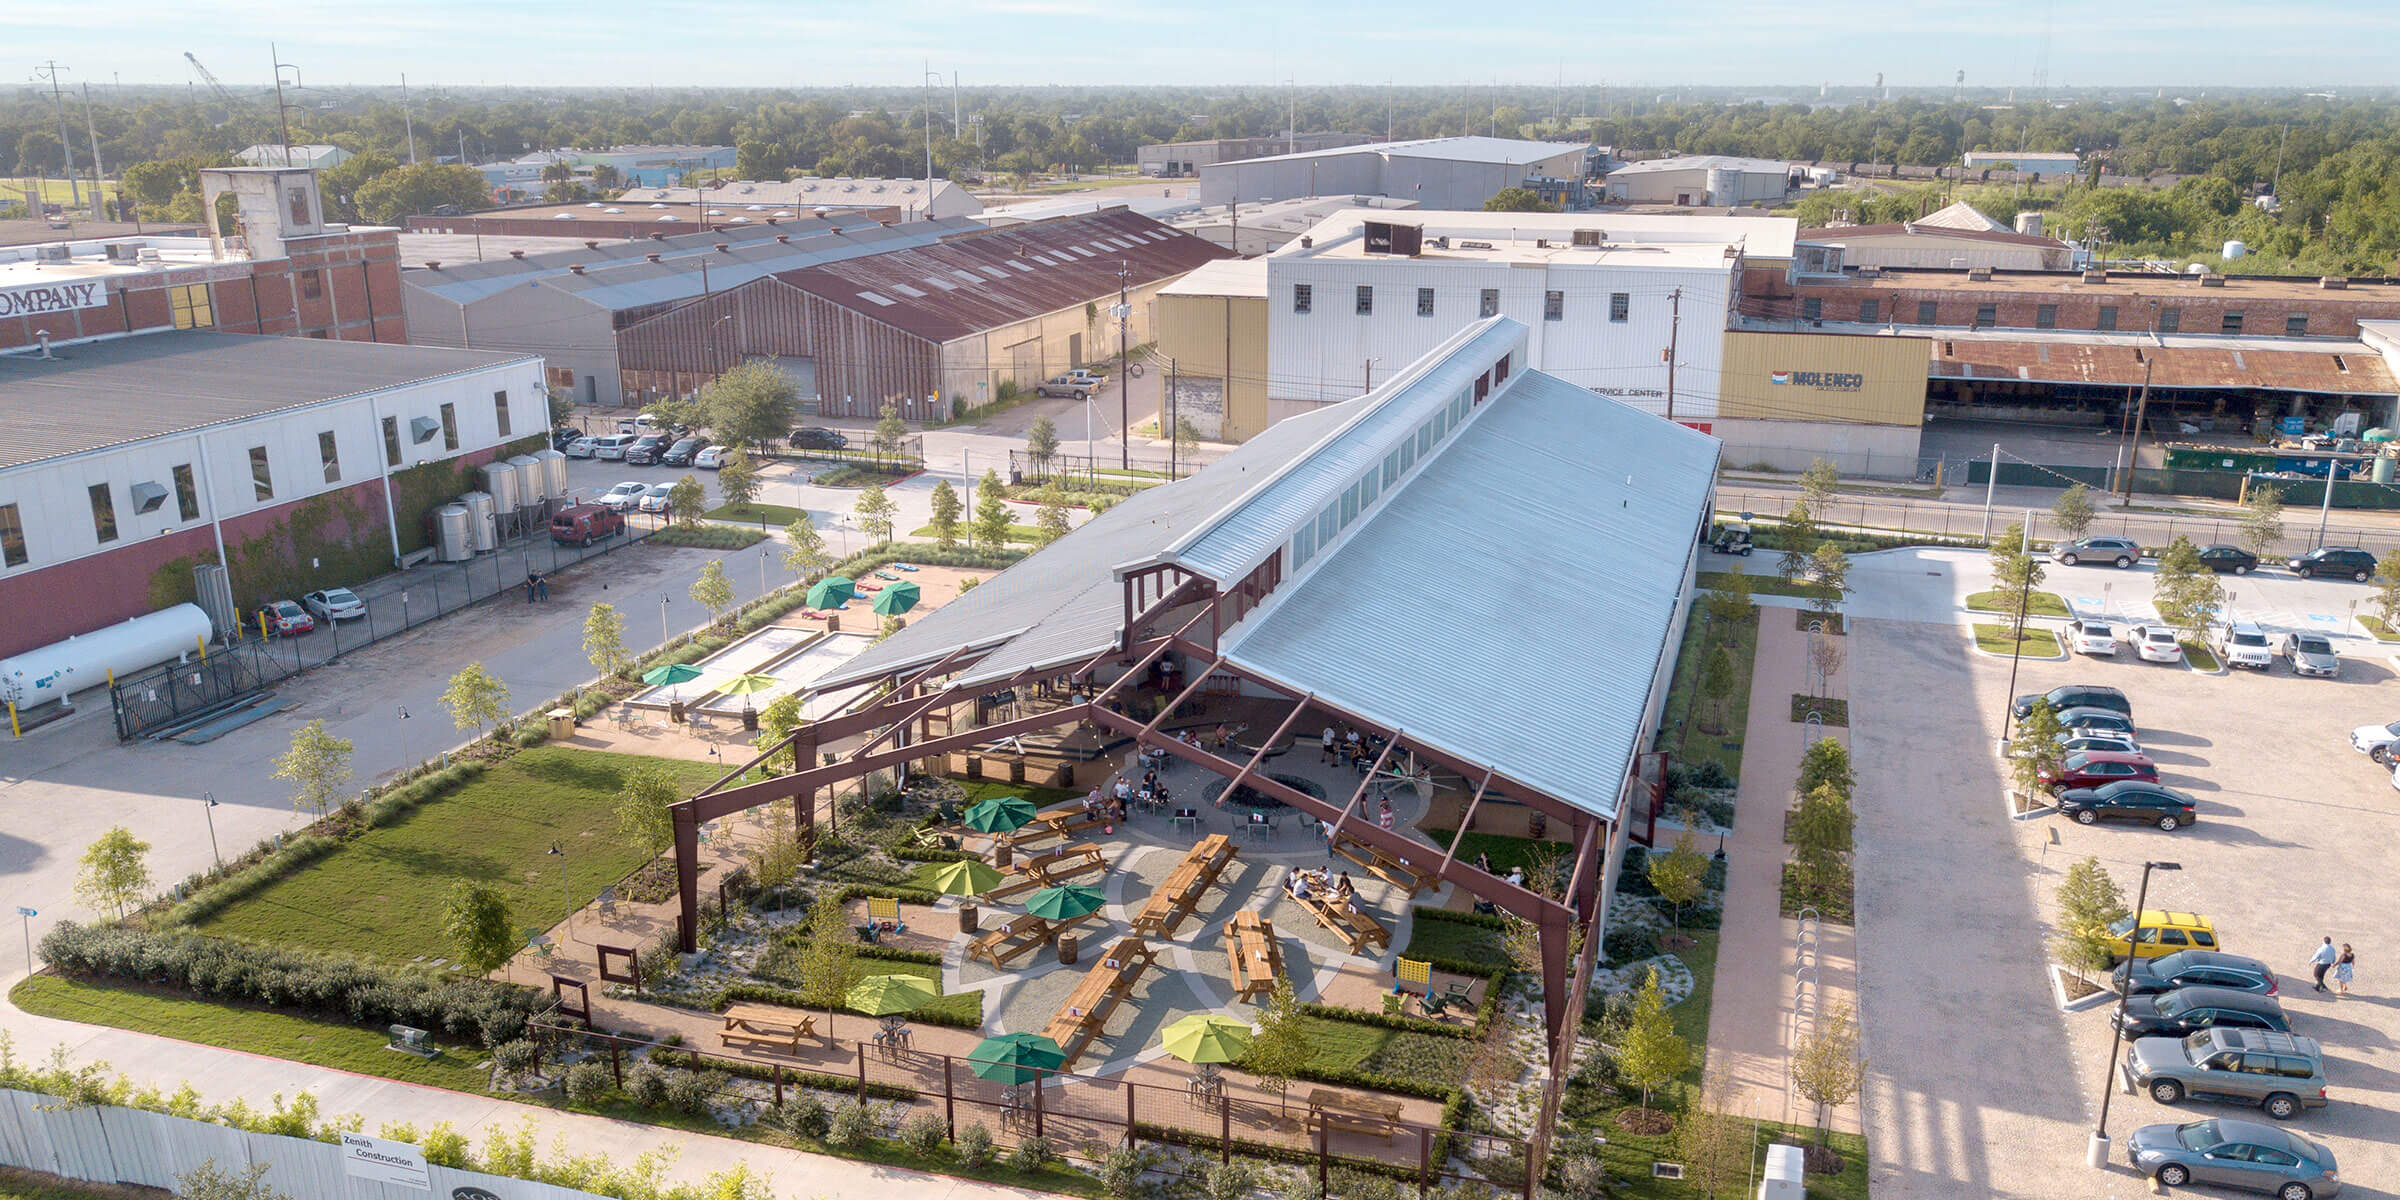 Above the Saint Arnold Brewing Company in Houston, Texas